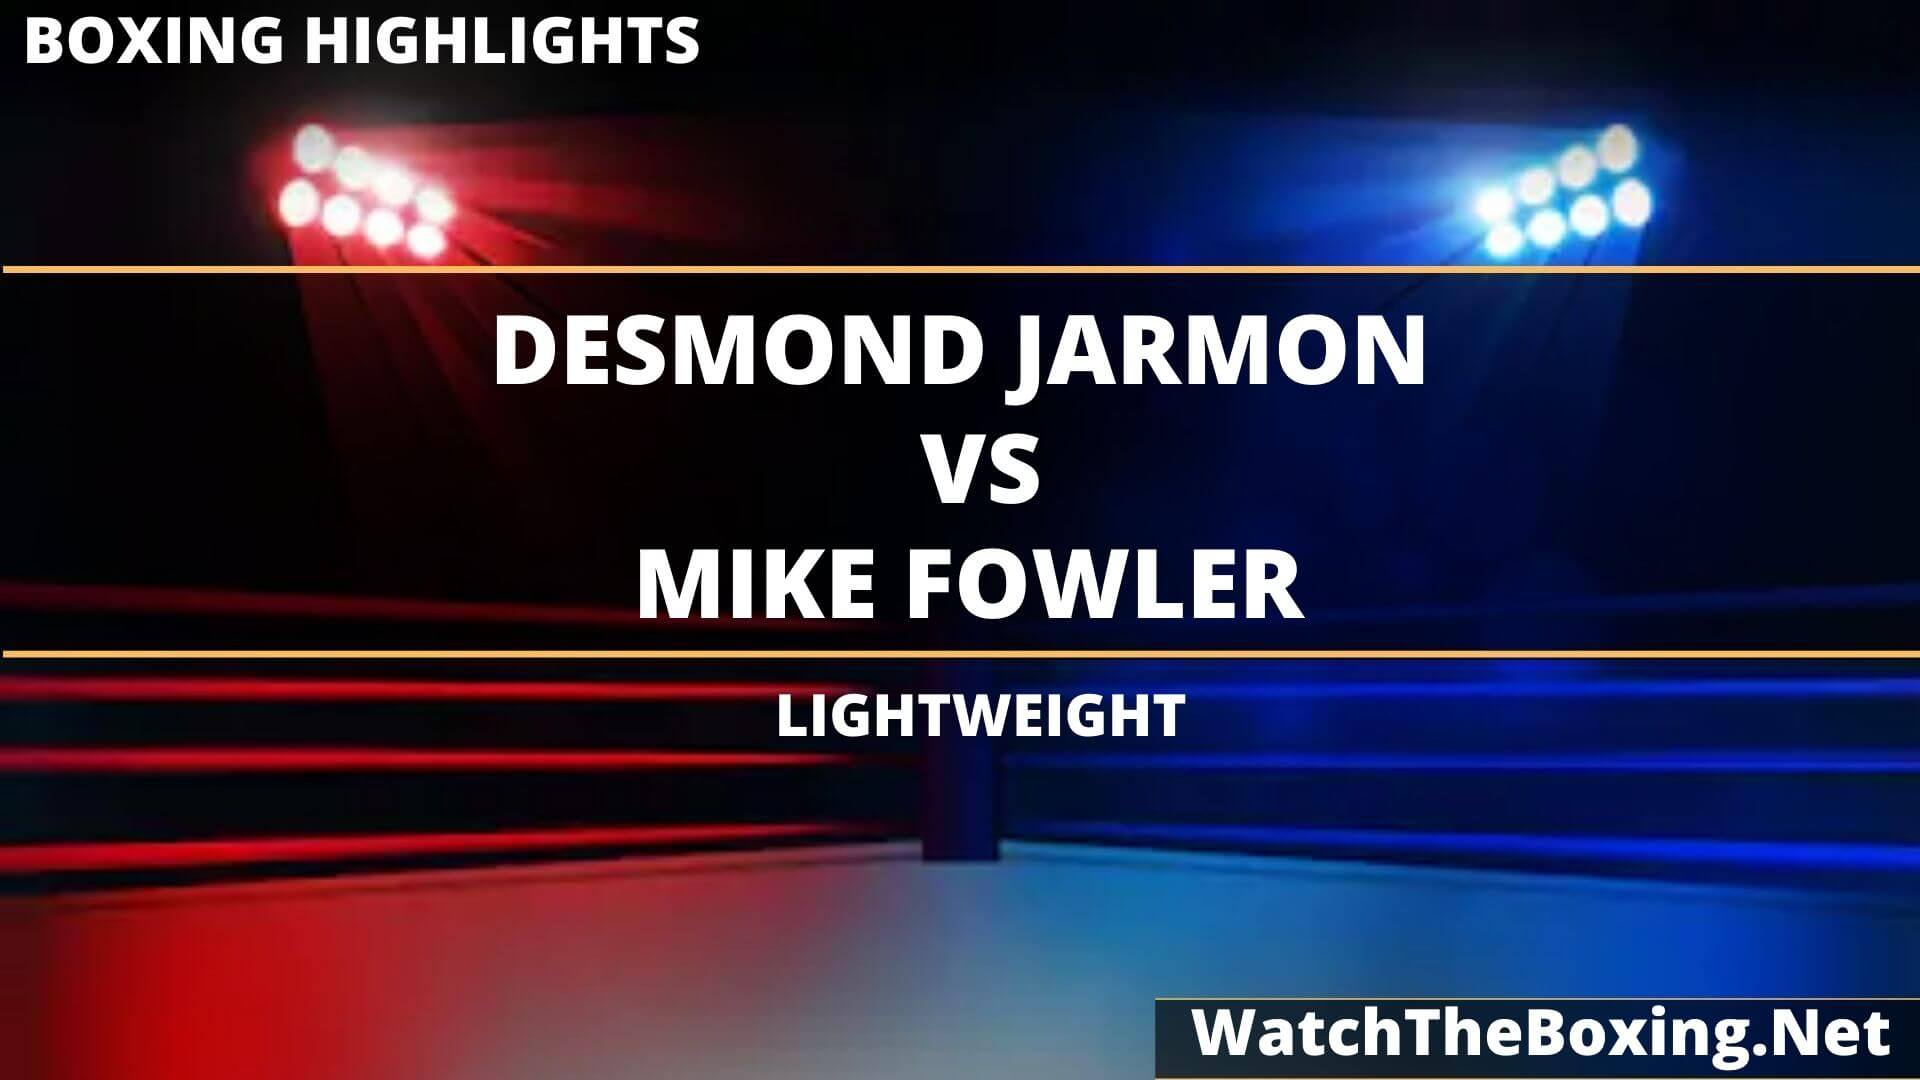 Desmond Jarmon Vs Mike Fowler Highlights 2020 Lightweight